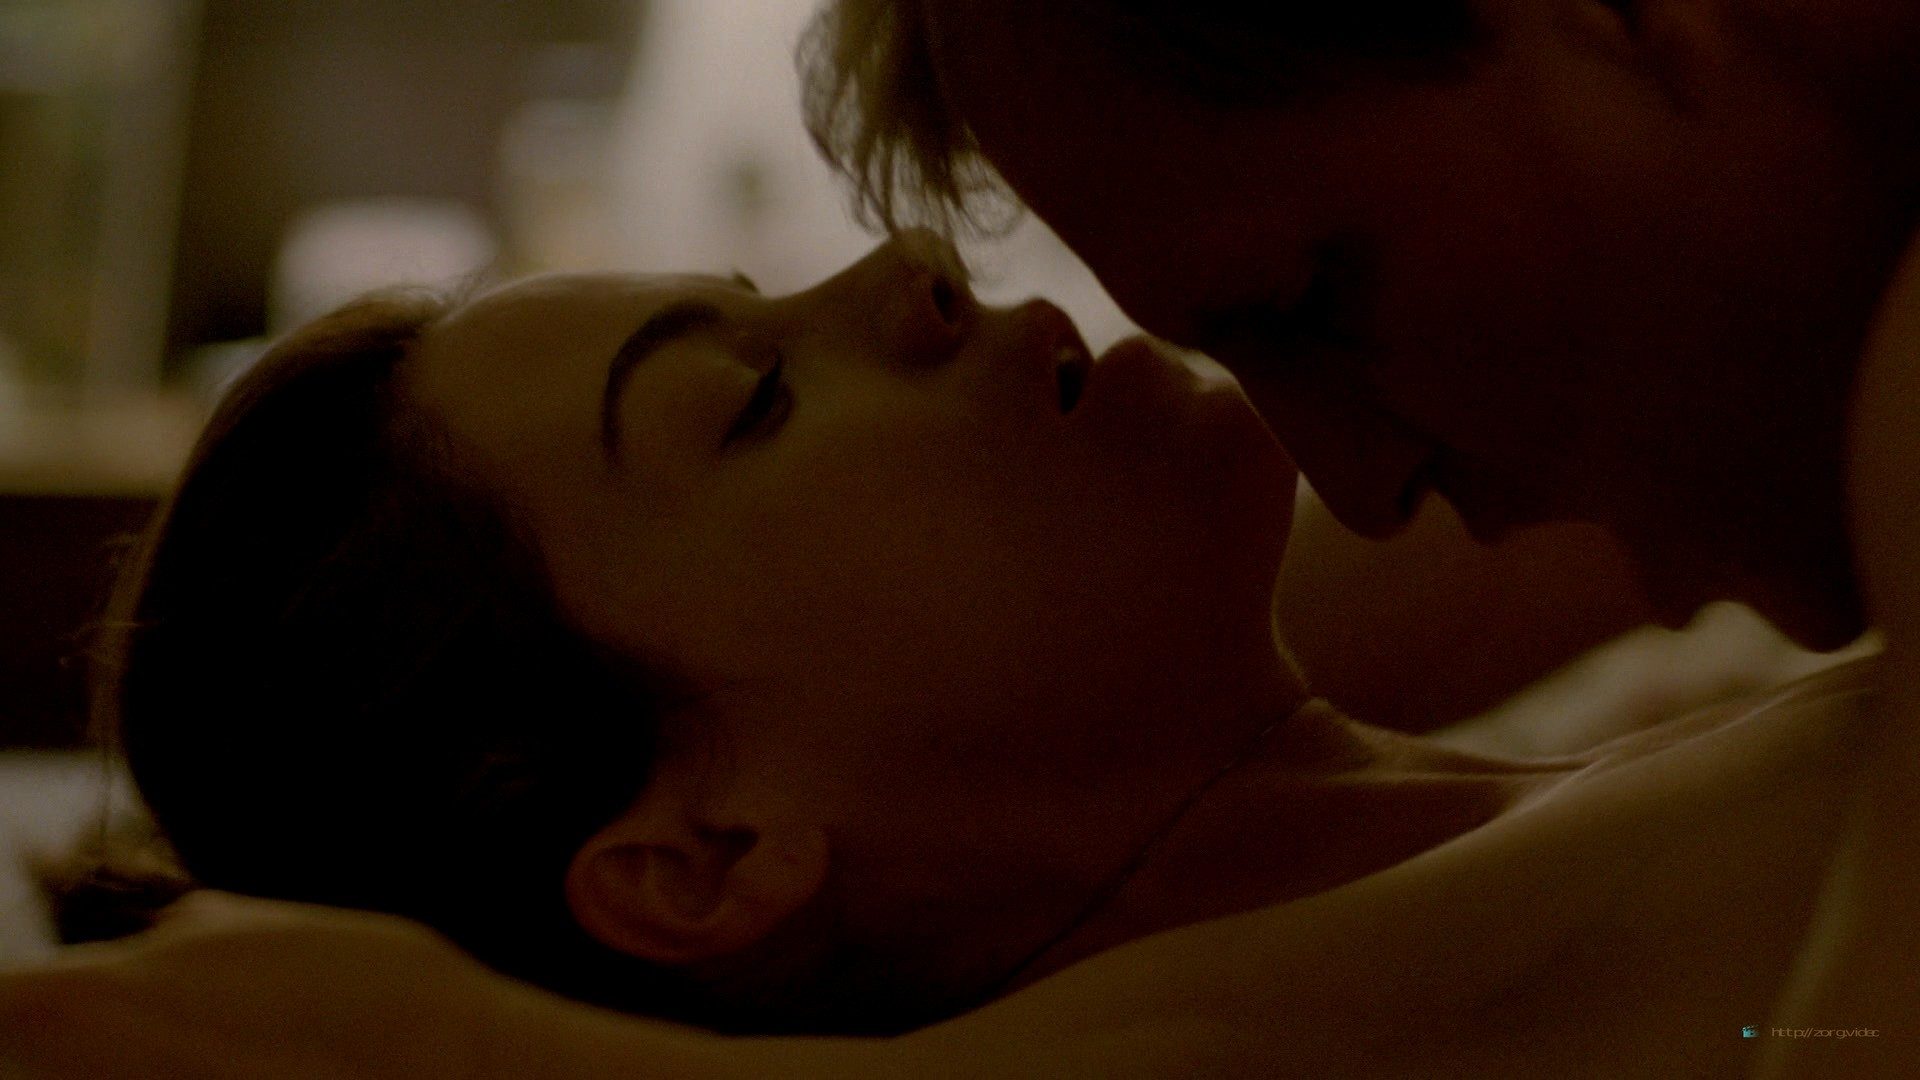 Michelle Monaghan nude brief topless and sex - True Detective (2014) S01 HD 1080p BluRay (9)